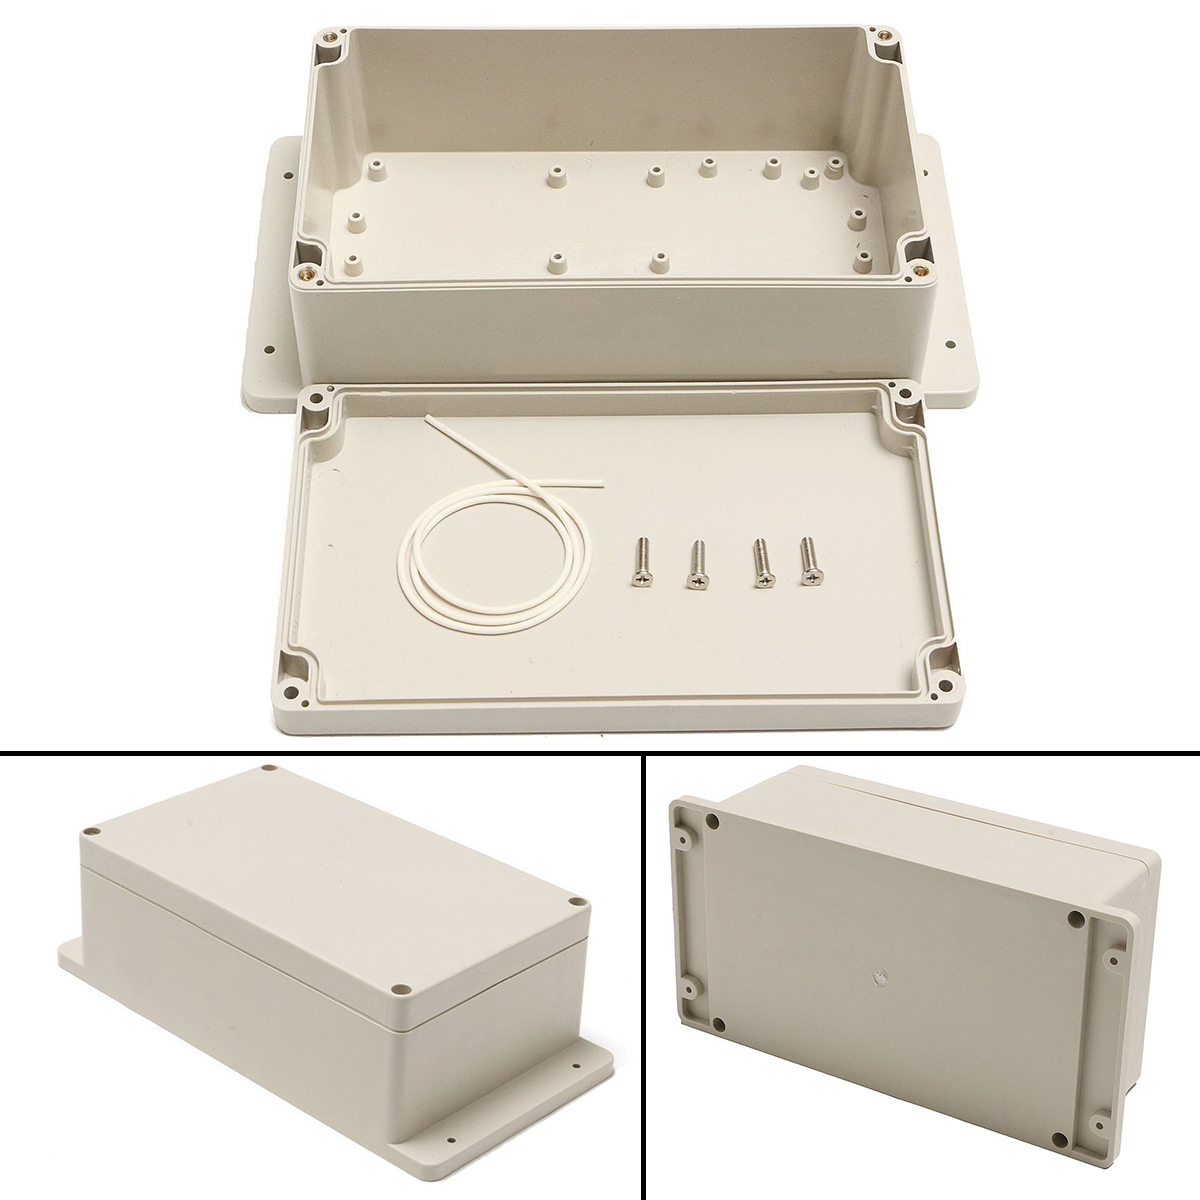 1pc Waterproof Enclosure Box Plastic Electronic Project Instrument Case 200x120x75mm electronic enclosure project box 1 pcs 204 143 78mm plastic waterproof enclosure instrument box electronical junction box